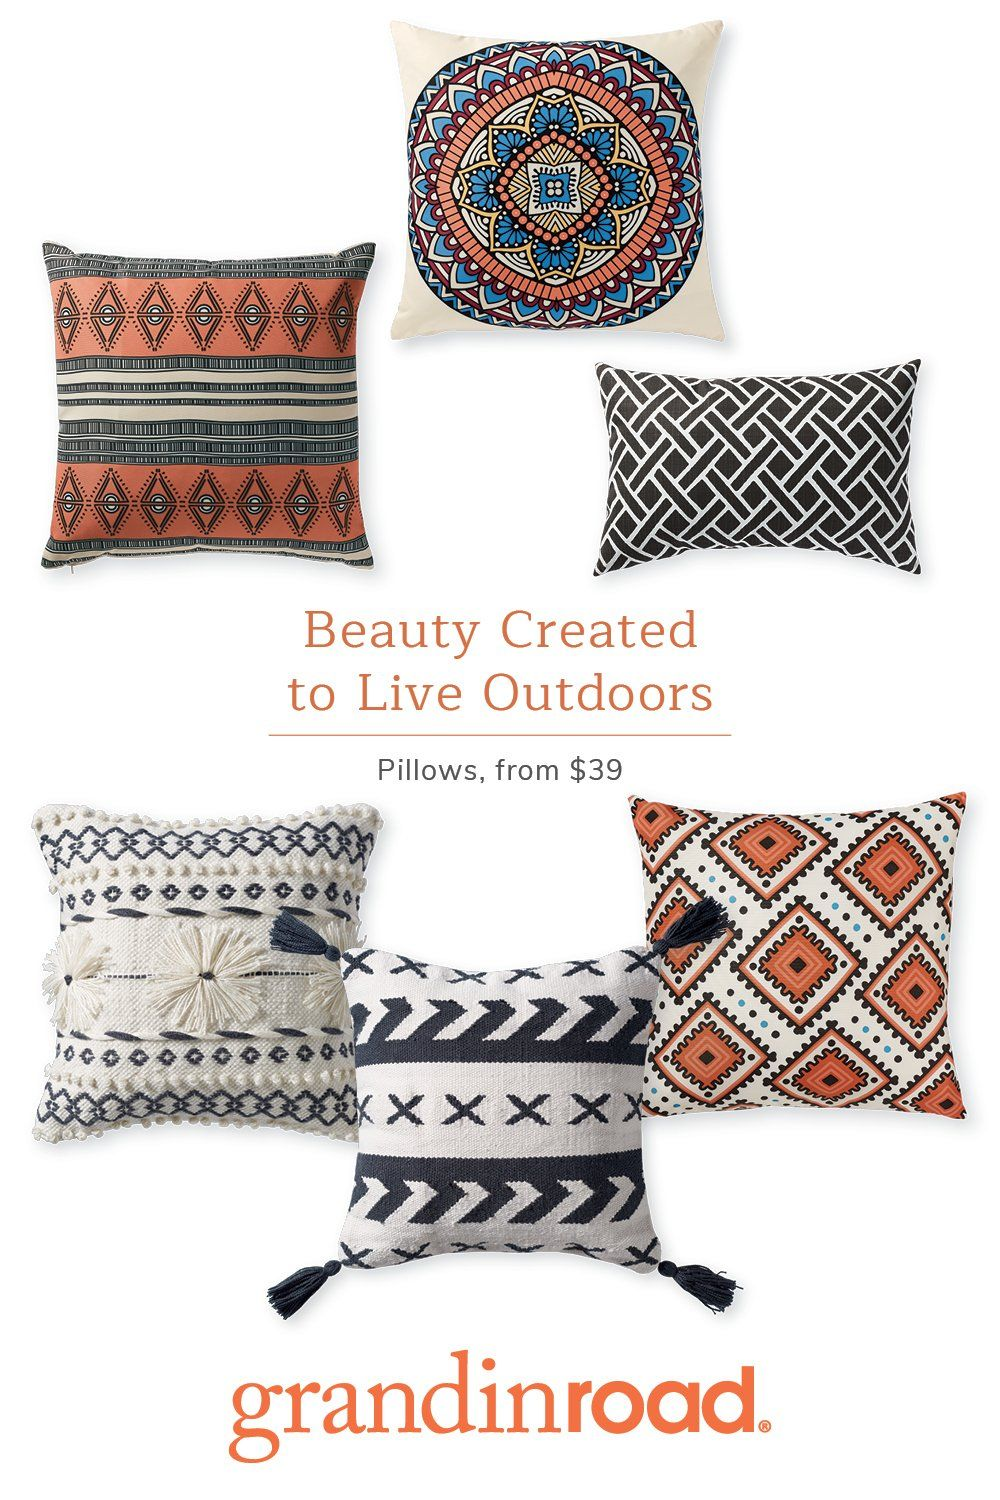 Decorative pillows are an effortless way to instantly add